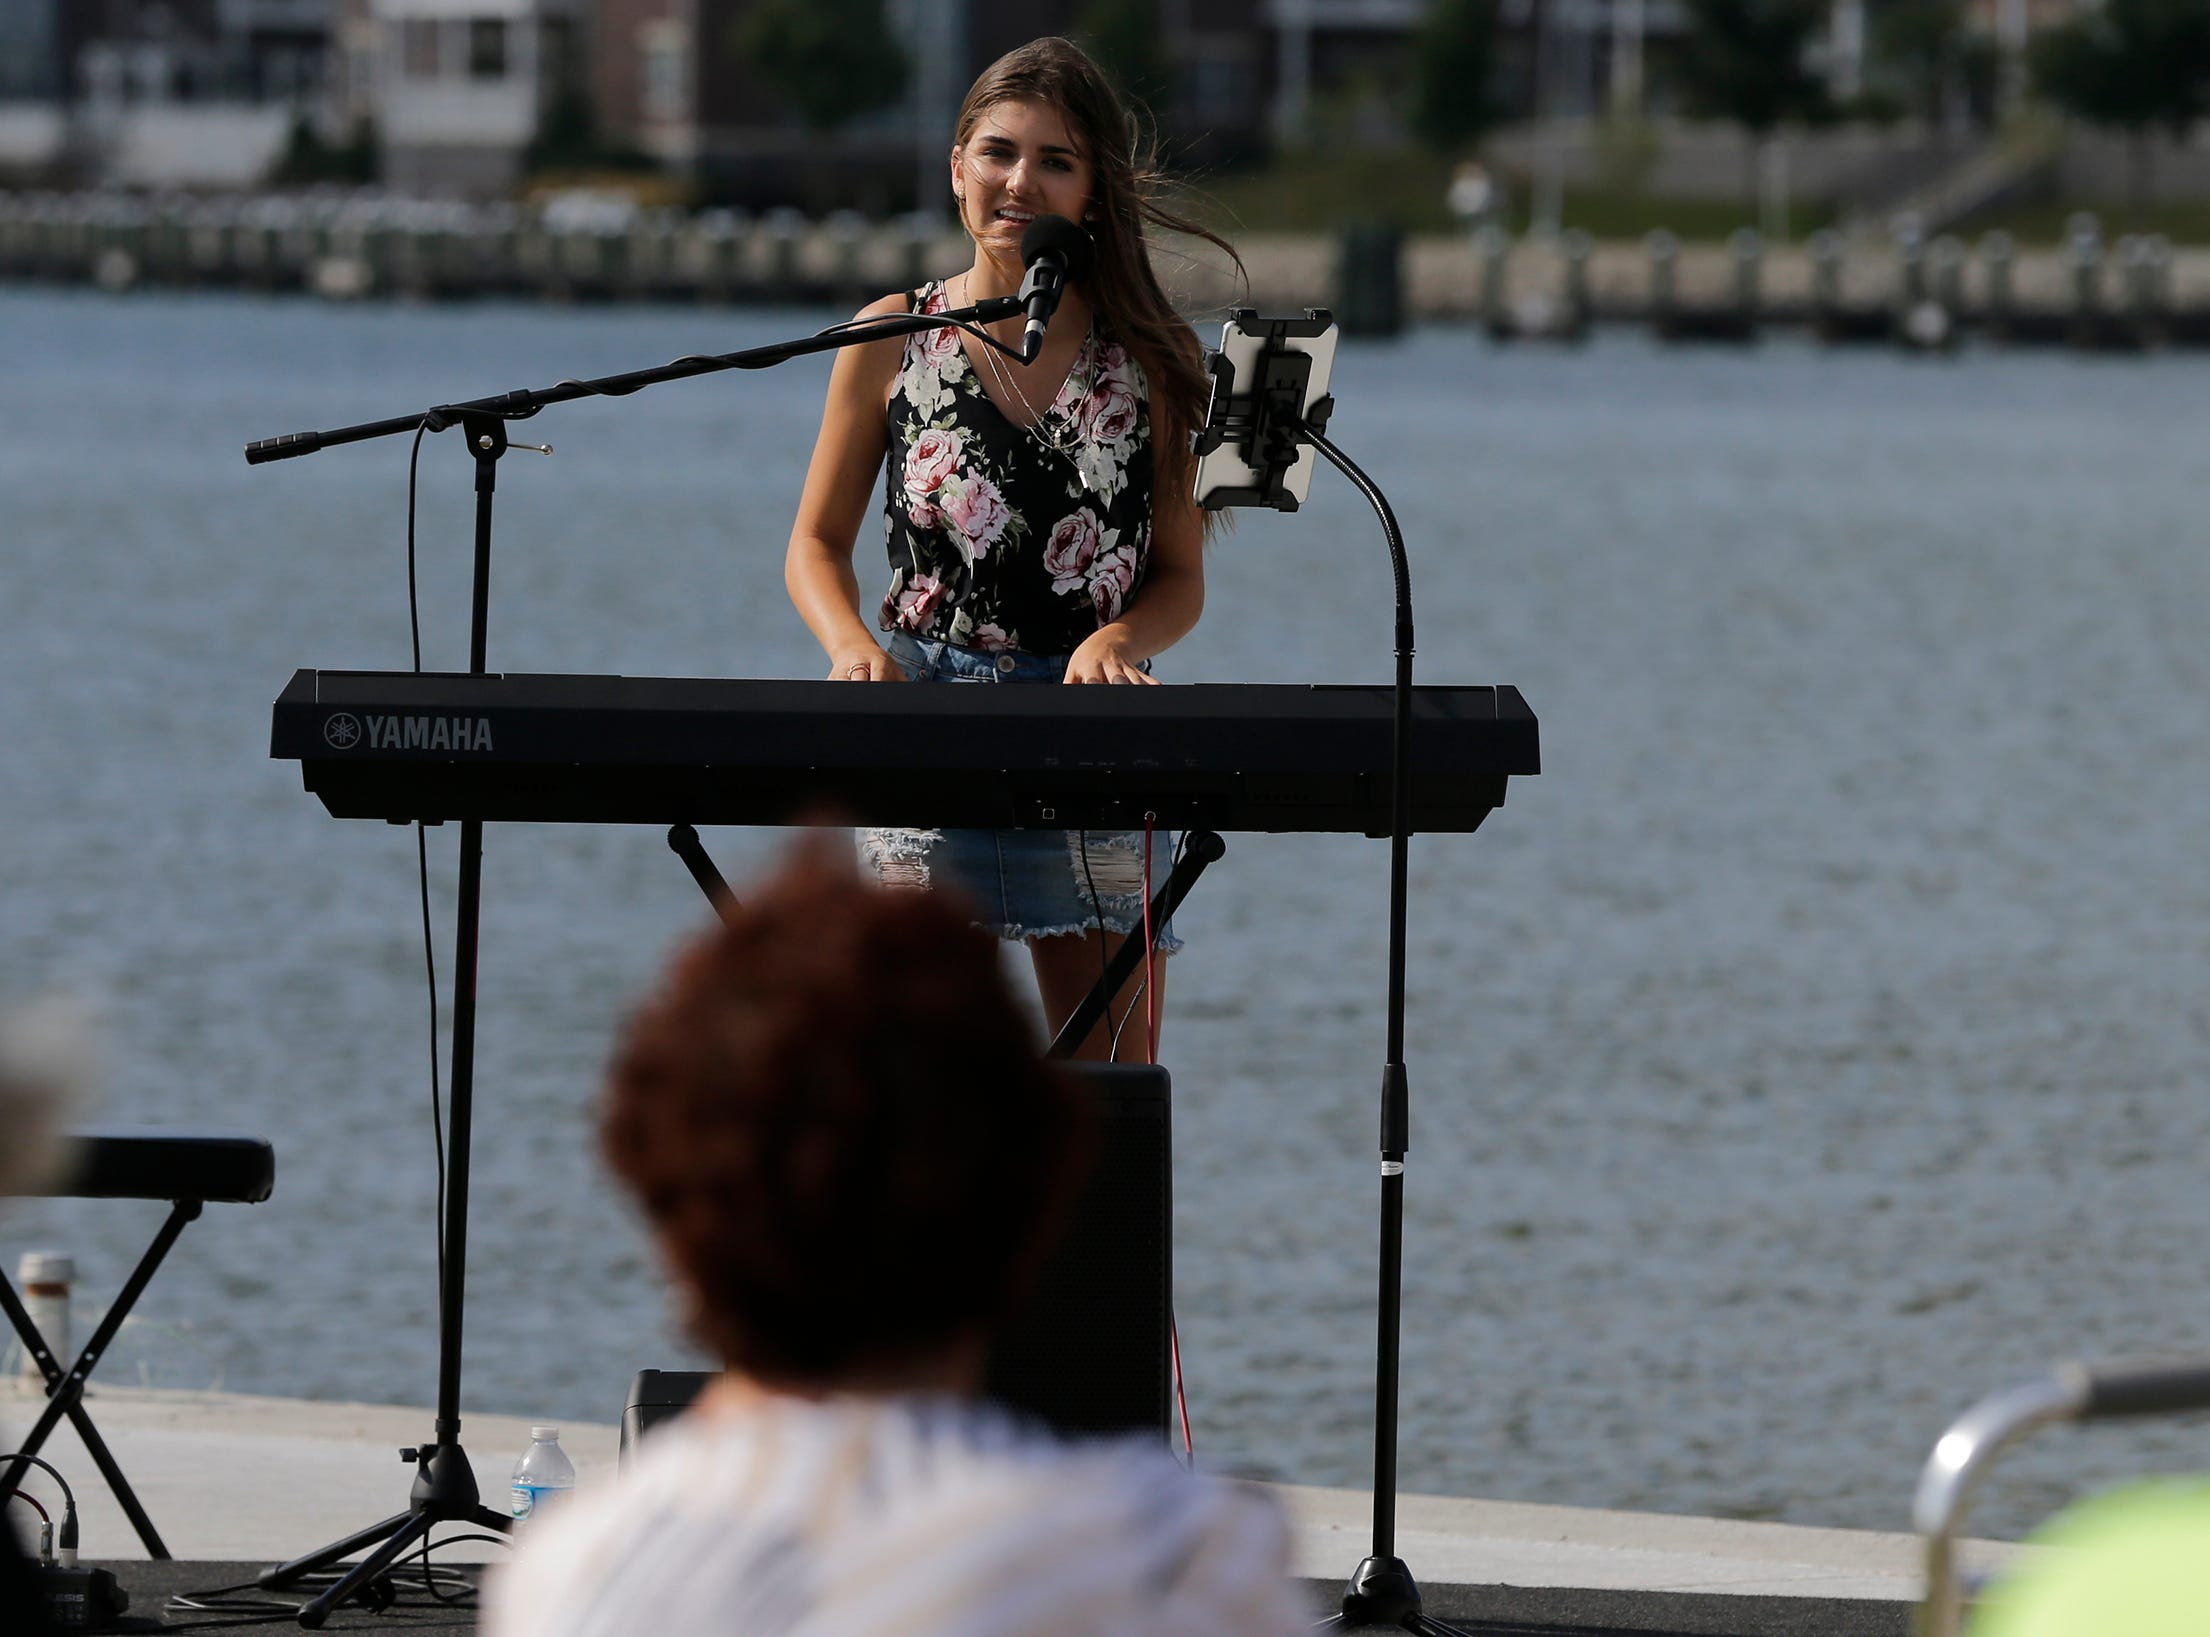 Franki Mascato provided the entertainment for the ribbon cutting.  A ribbon cutting was held for the completion of the east and west Morgan District River- walk sections which provides a loop for users on the north and south shores Thursday,  August 23, 2018, in Oshkosh, Wis.  Construction was made possible through a Wisconsin DNR Stewardship grant and City Capital Improvement Program funds.Thursday,  August 23, 2018, in Oshkosh, Wis.Joe Sienkiewicz/USA Today NETWORK-Wisconsin